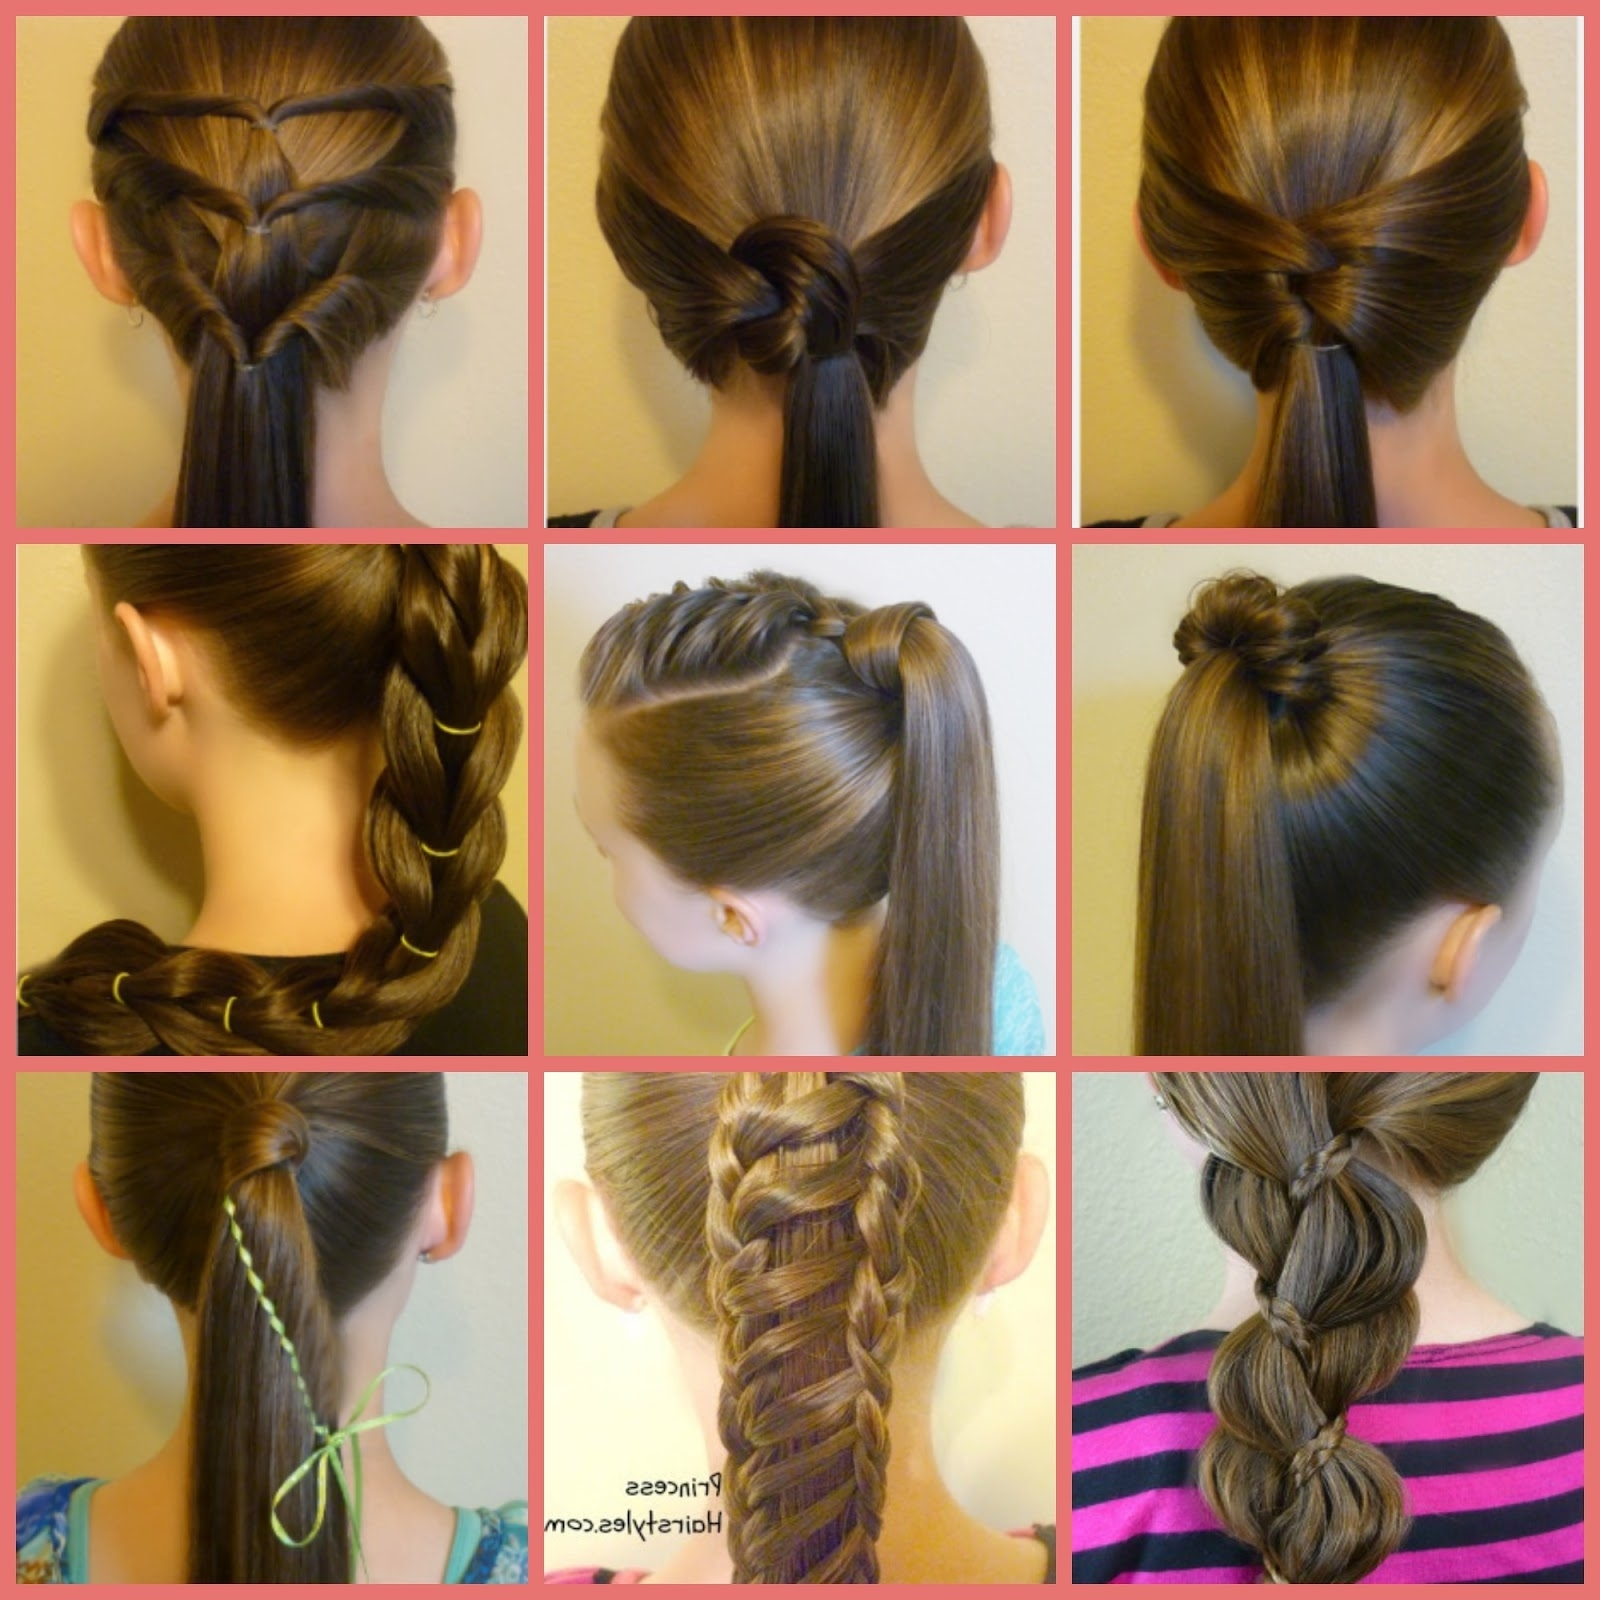 10 Easy Ponytail Hairstyles – Hairstyles For Girls – Princess Hairstyles Within Well Liked Triple Braid Ponytail Hairstyles (View 1 of 20)